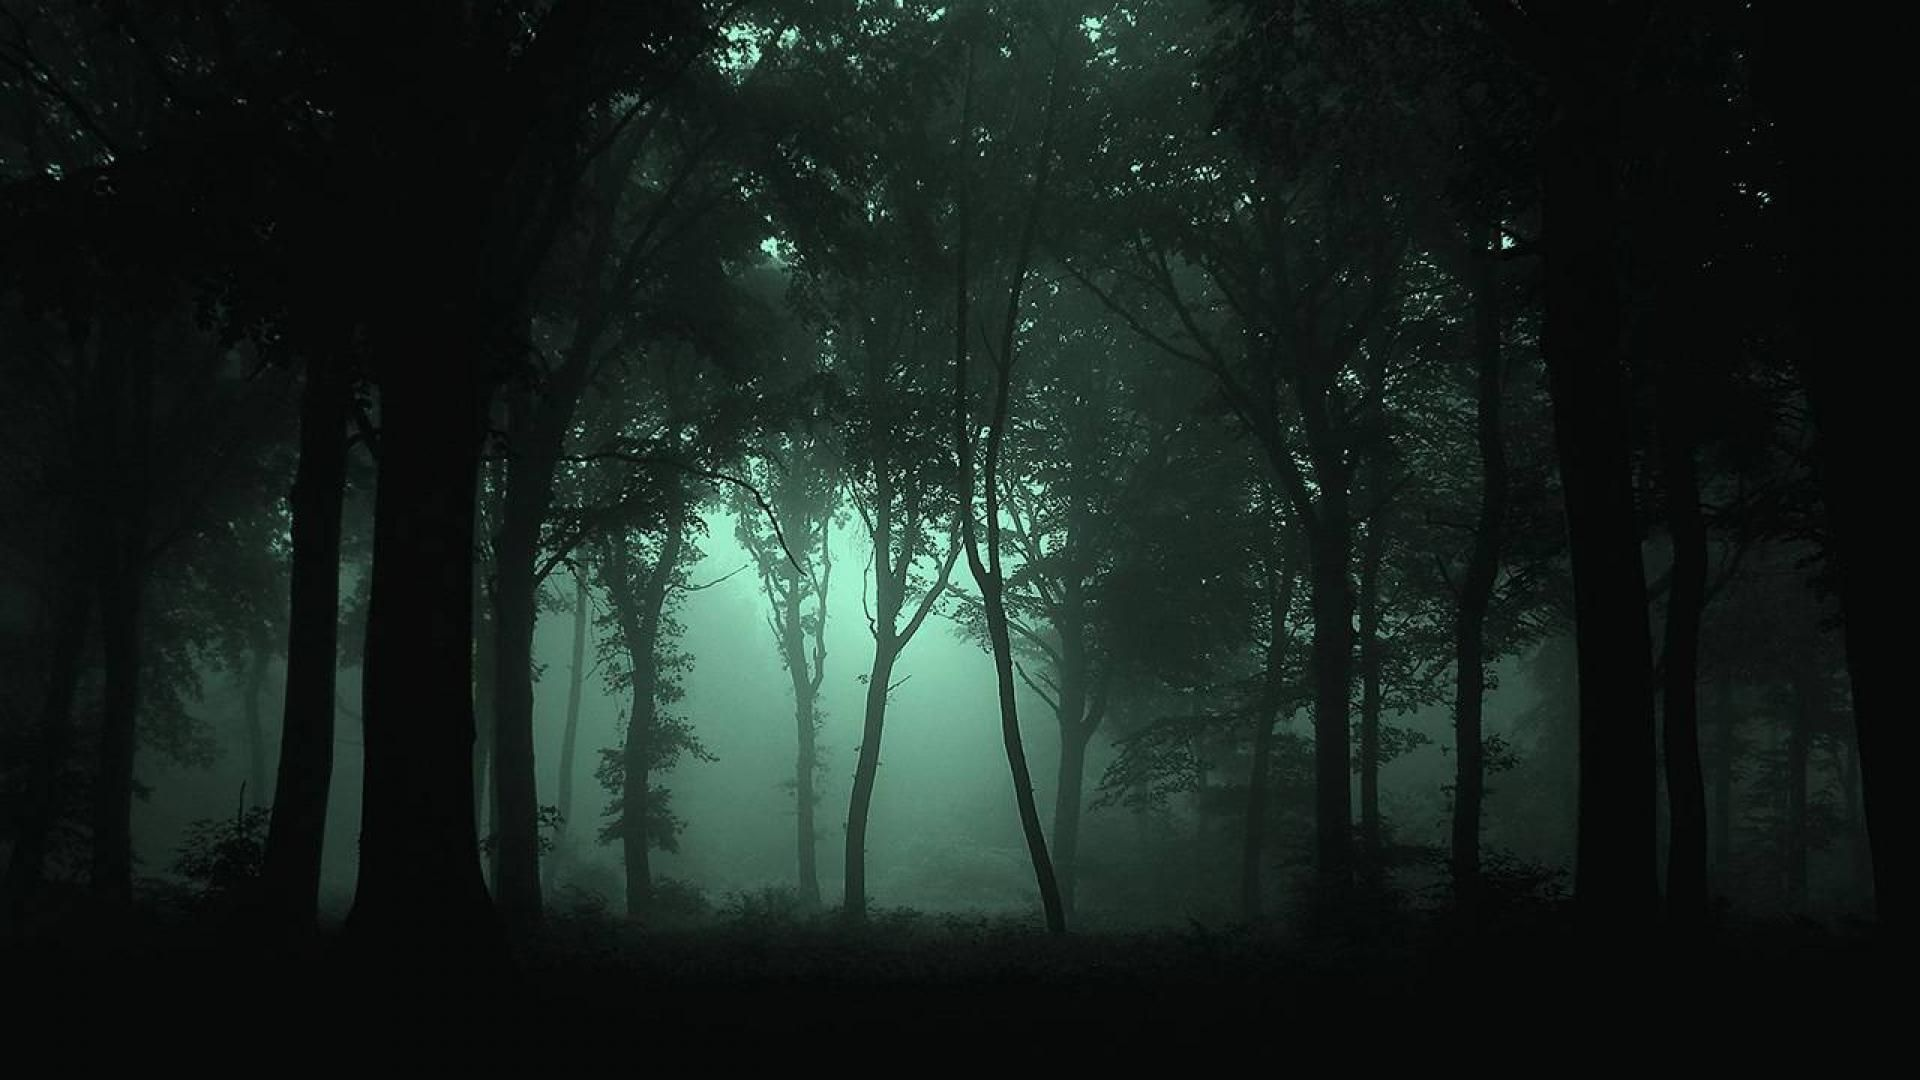 Dark Forest Wallpapers High Resolution Background 1 Hd Wallpapers Foggy Forest Night Forest Dark Forest